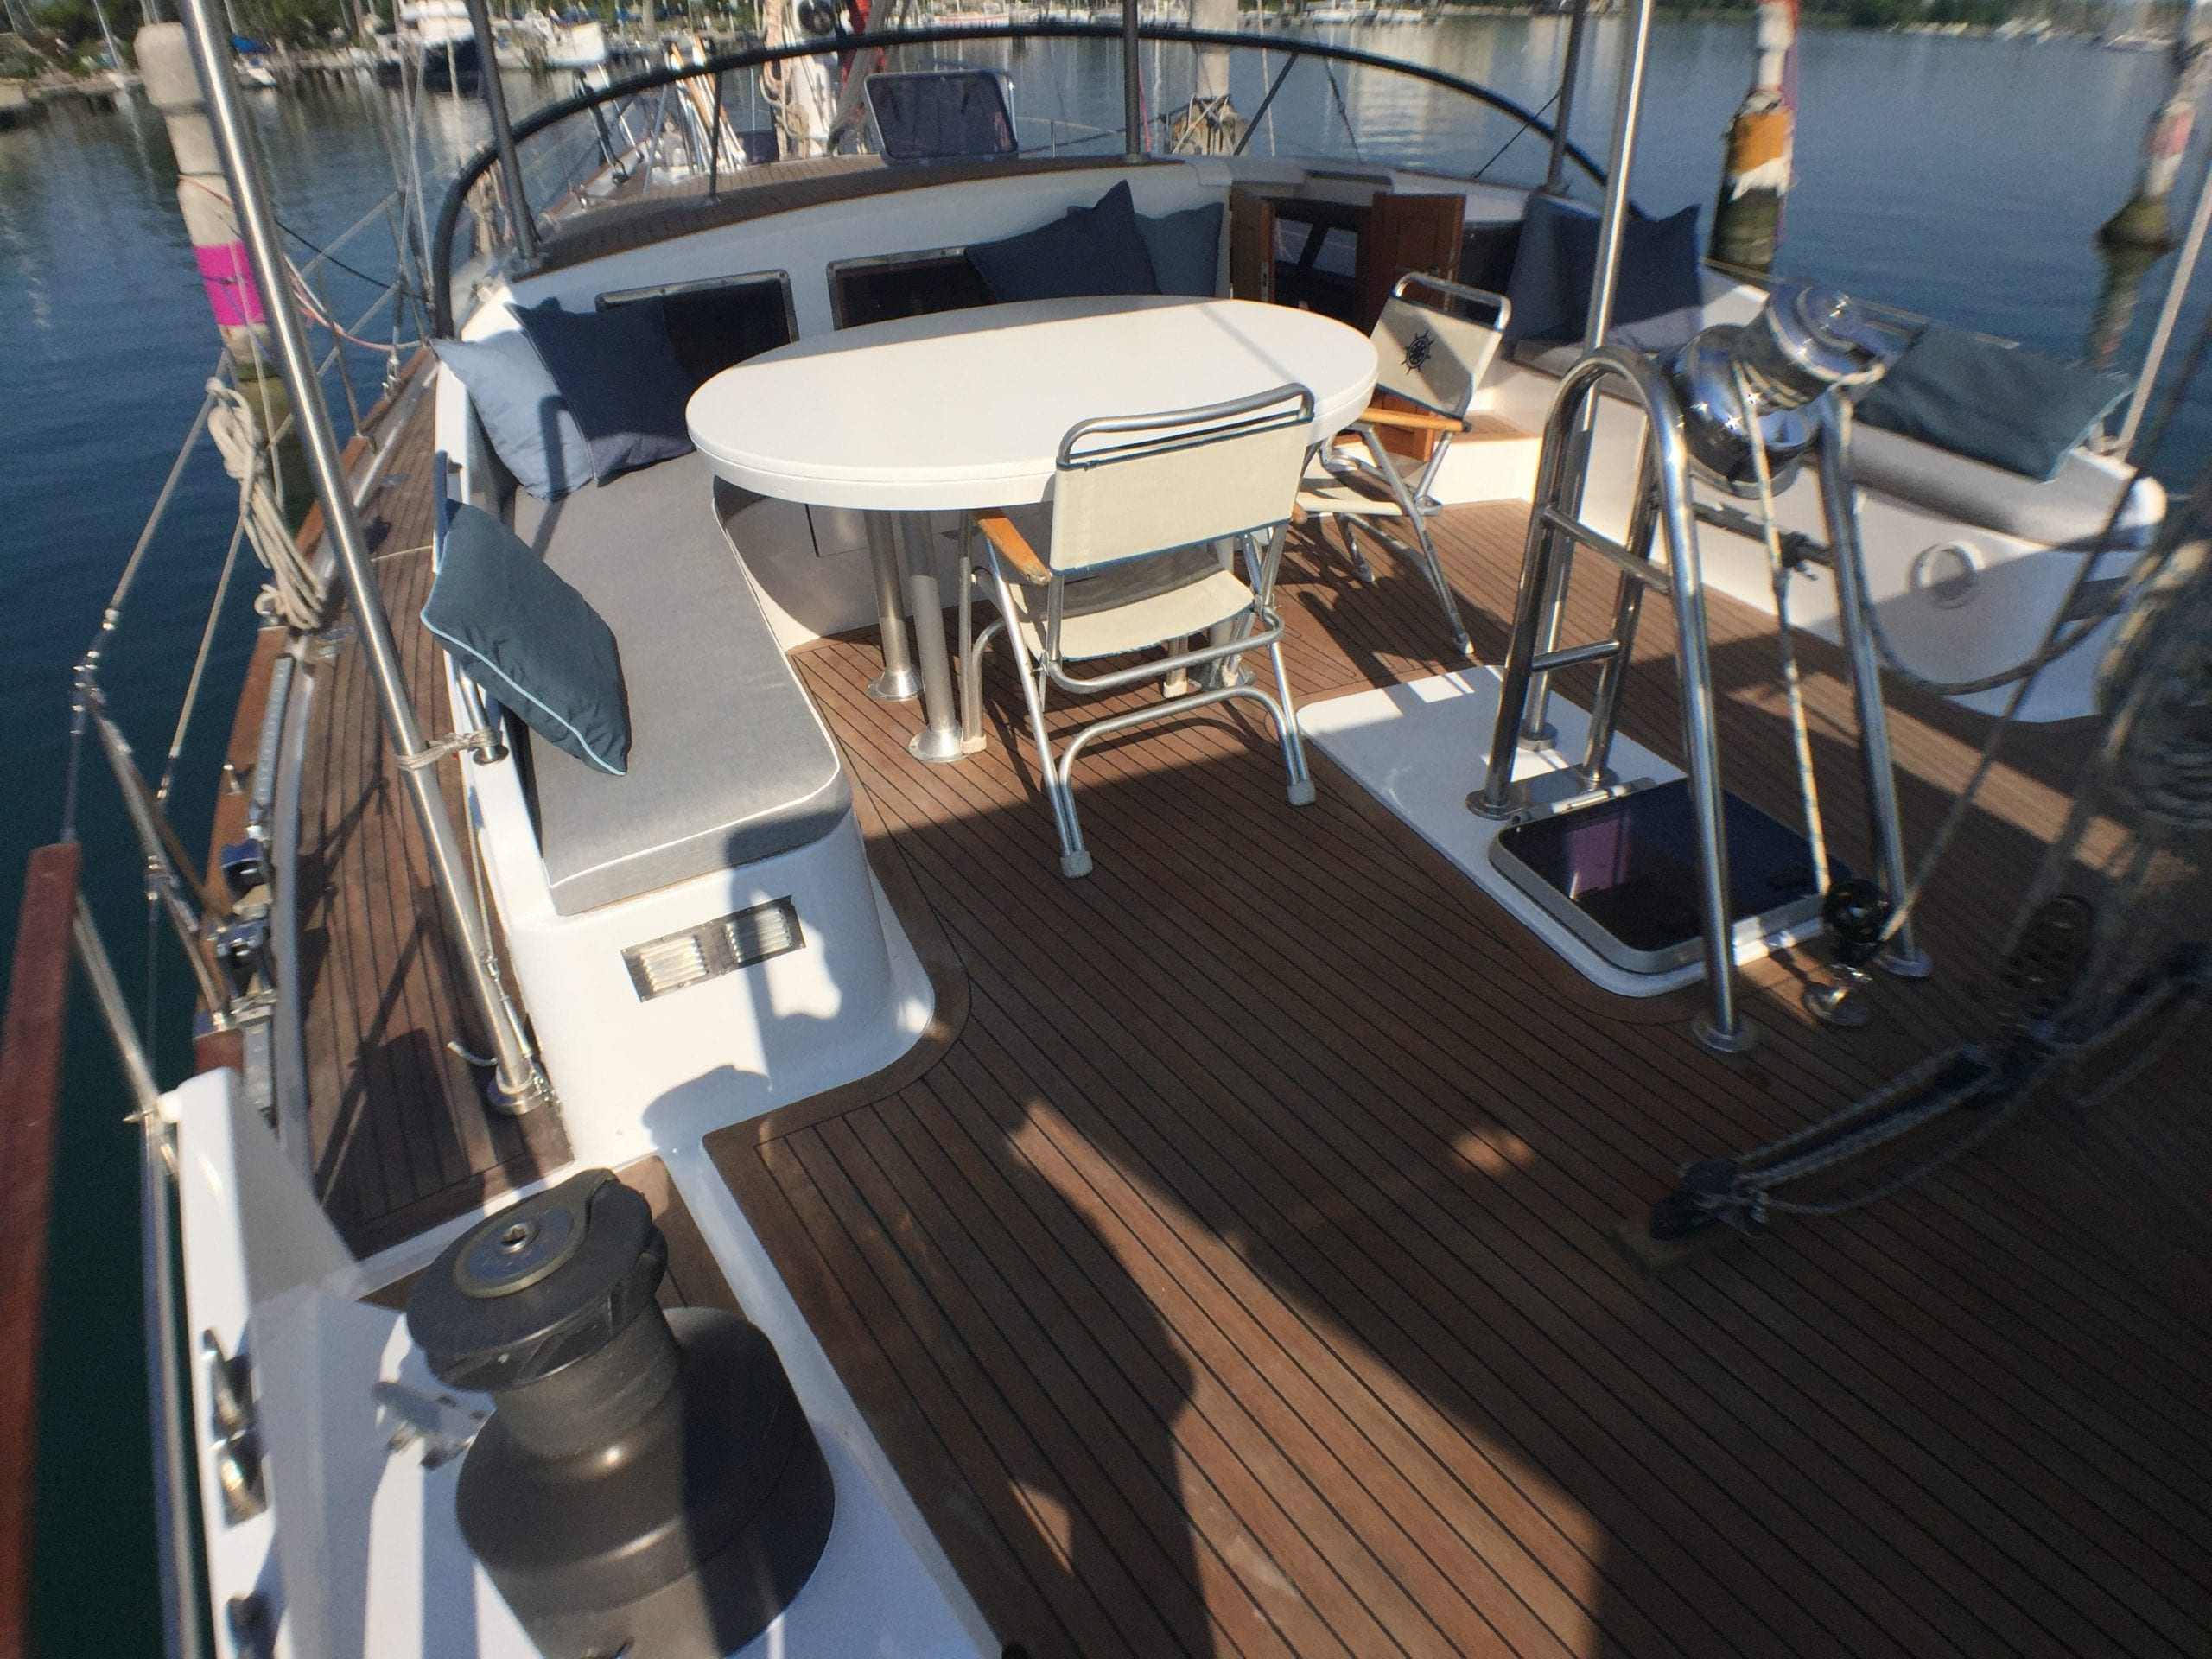 Yacht technical services: Teak deck renovation